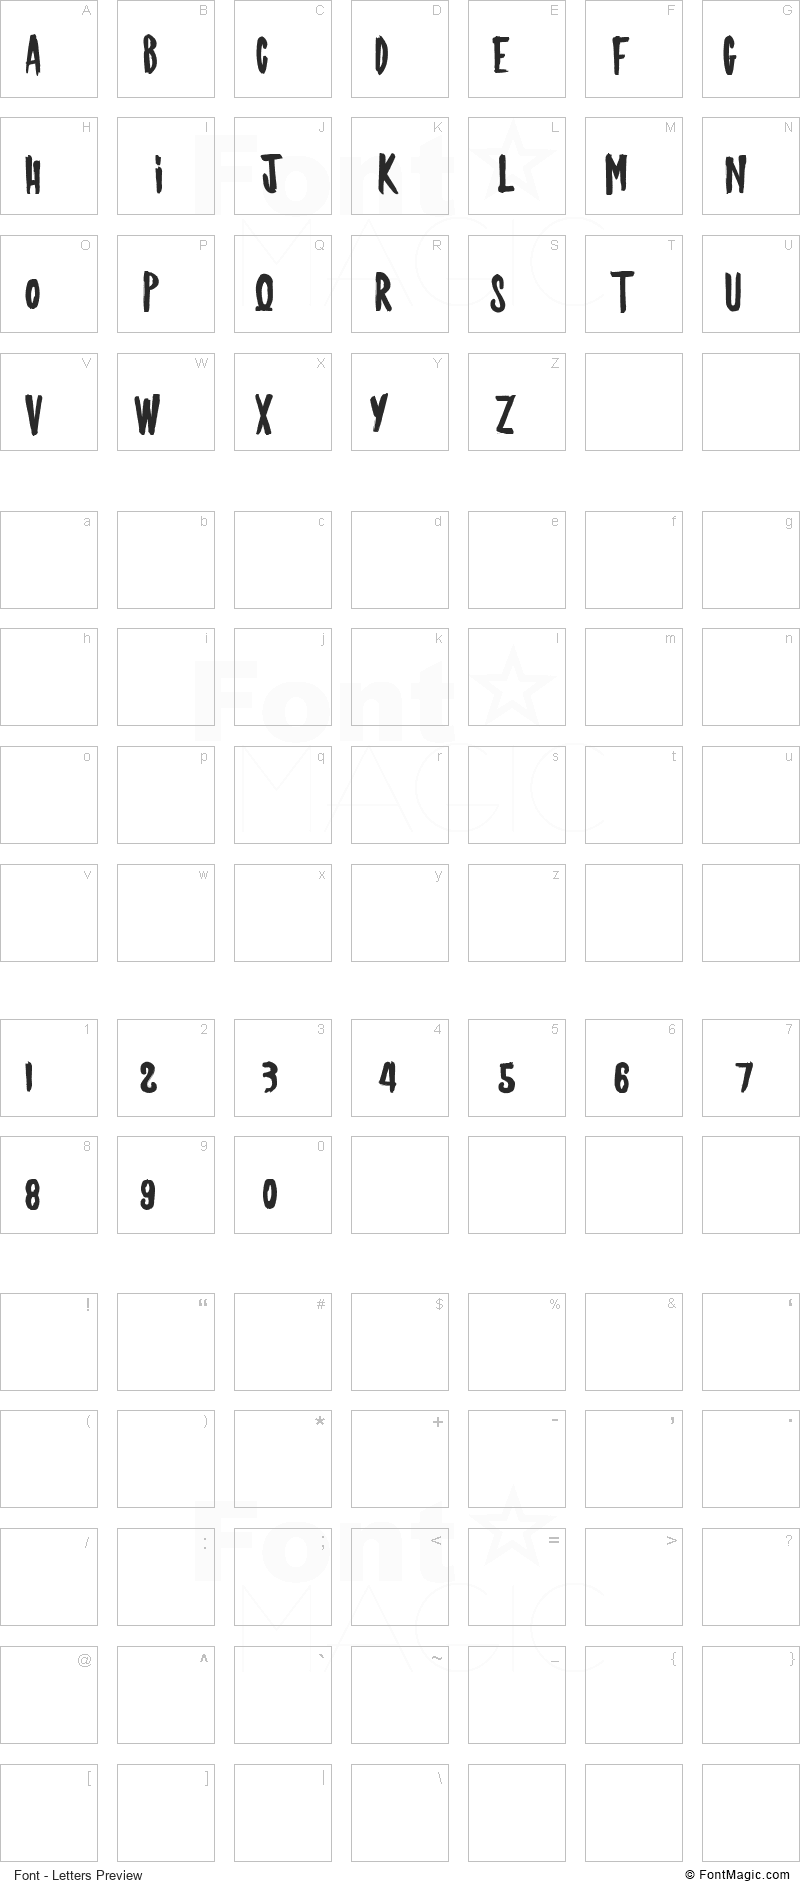 Jackyshow Font - All Latters Preview Chart